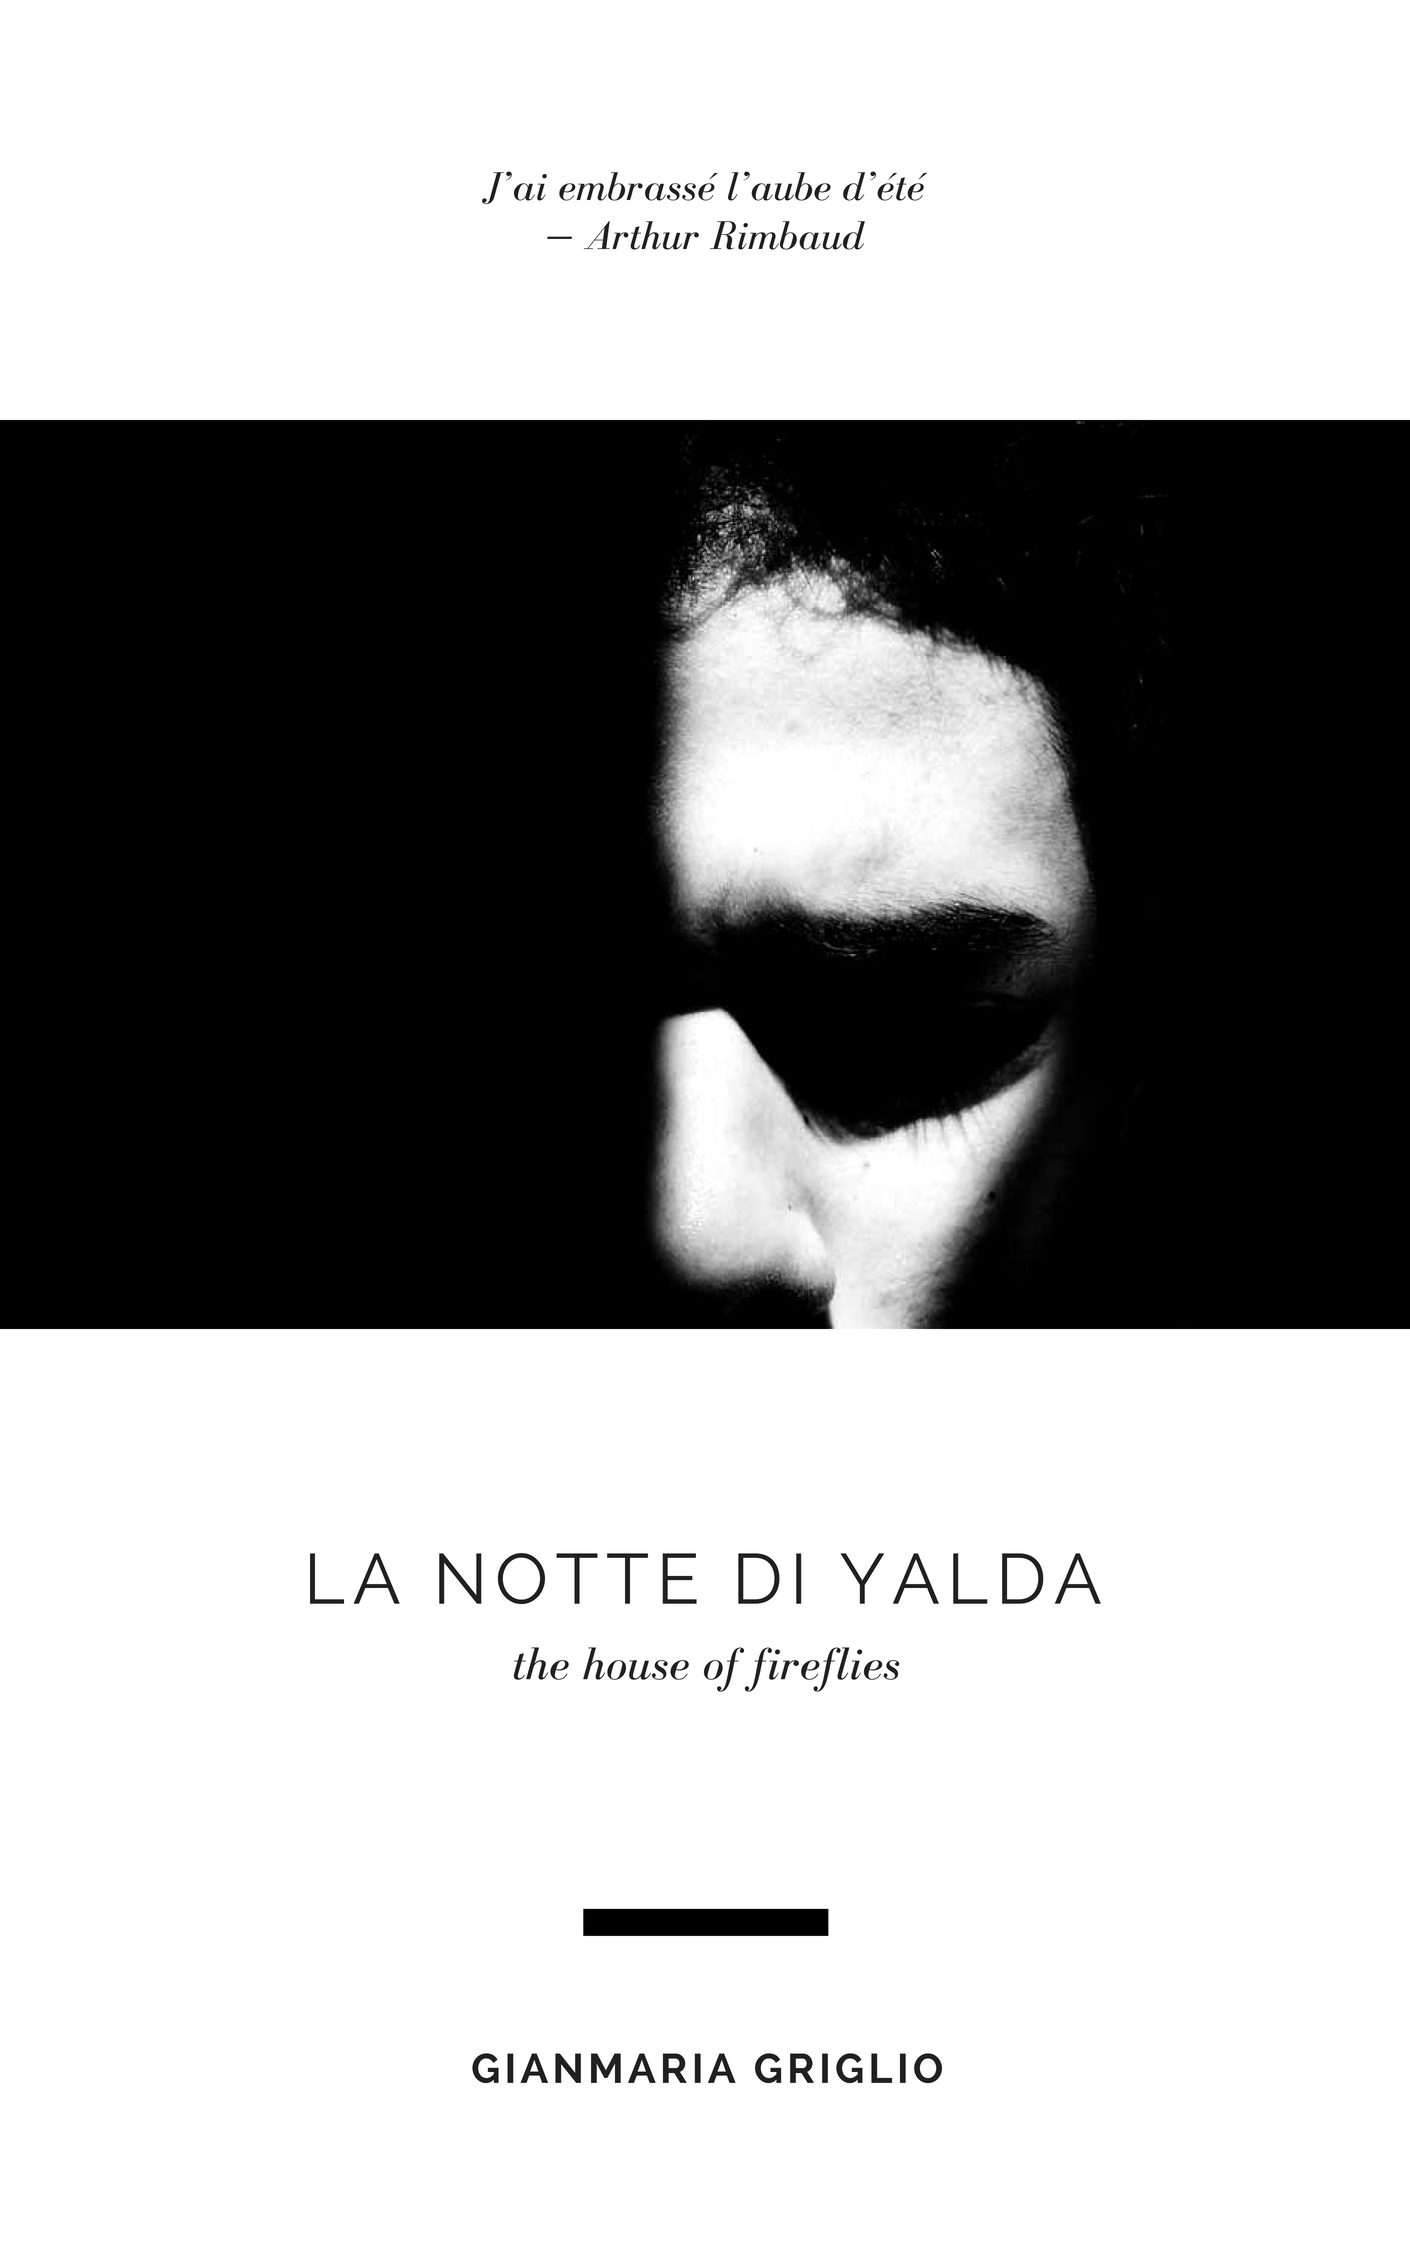 La notte di Yalda (The house of fireflies)